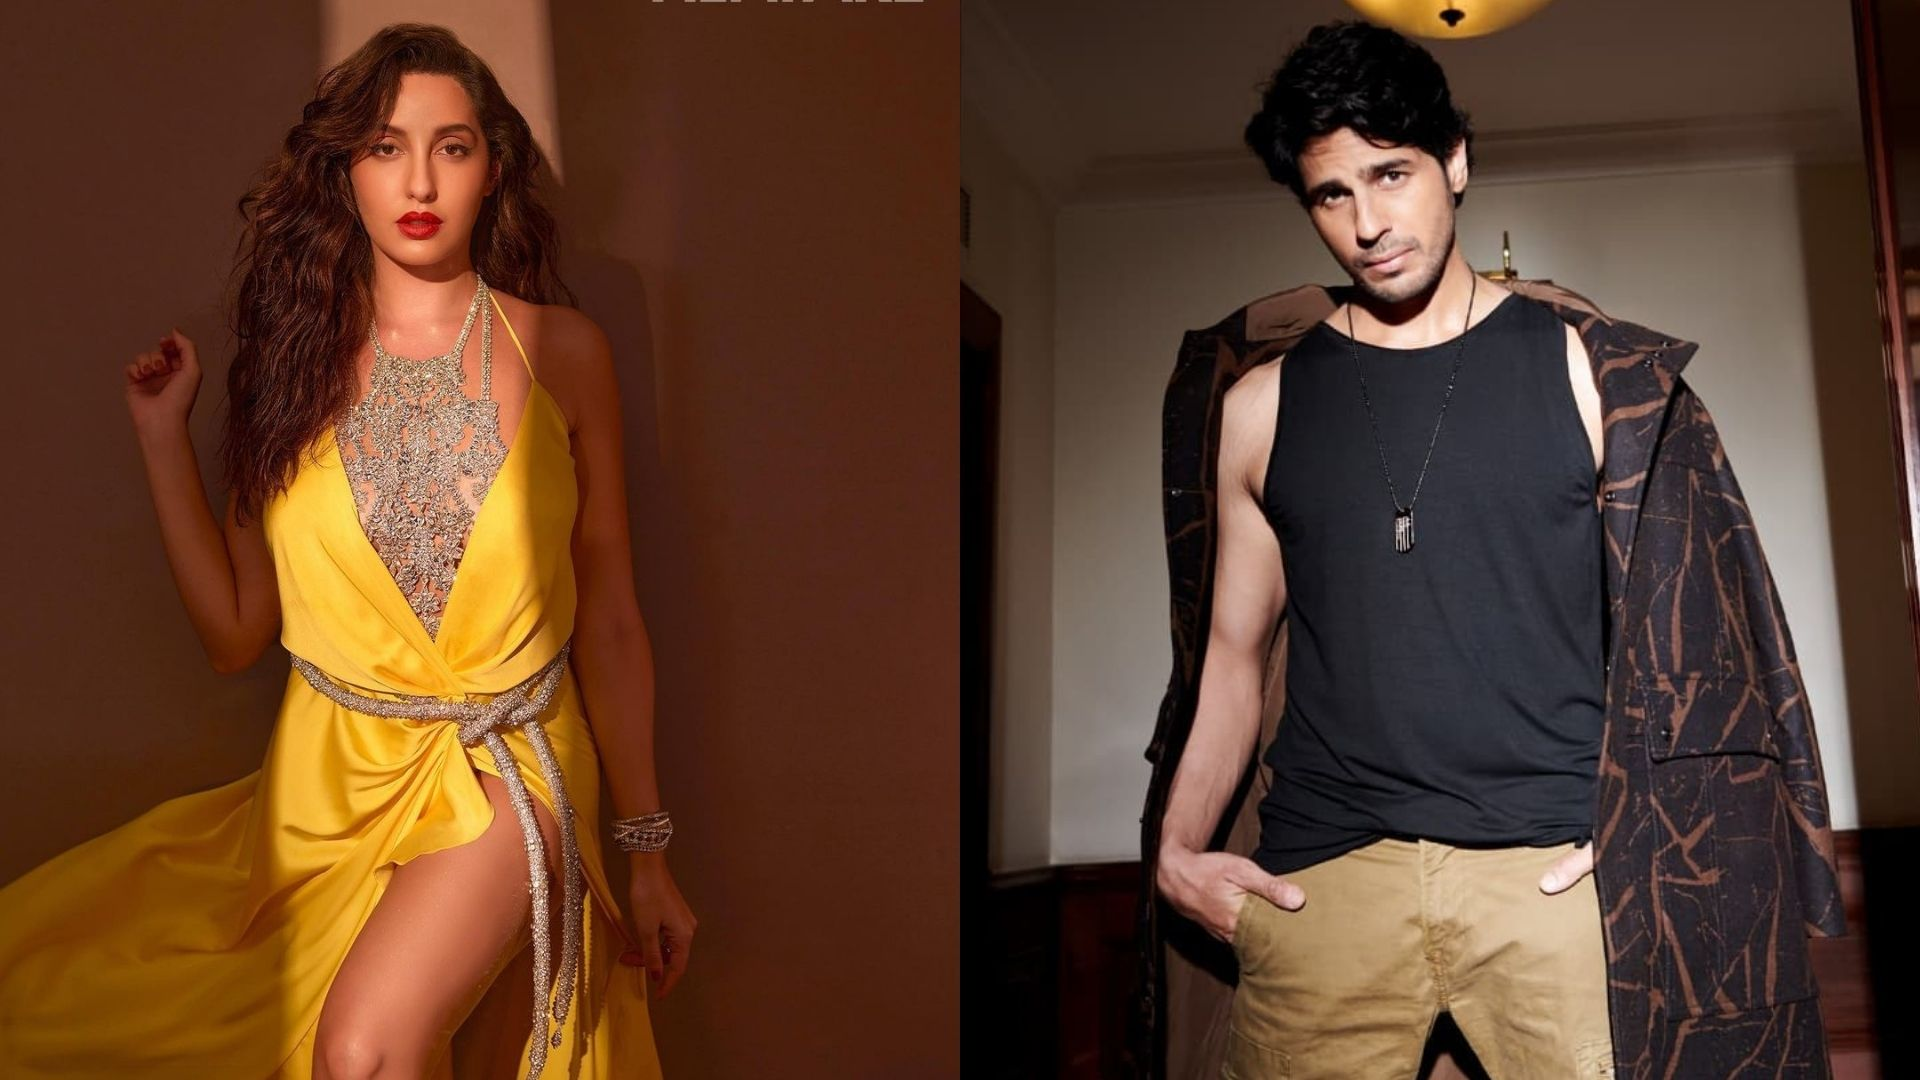 Nora Fatehi And Sidharth Malhotra To Groove Together On The Hindi Version Of THIS Famous Song